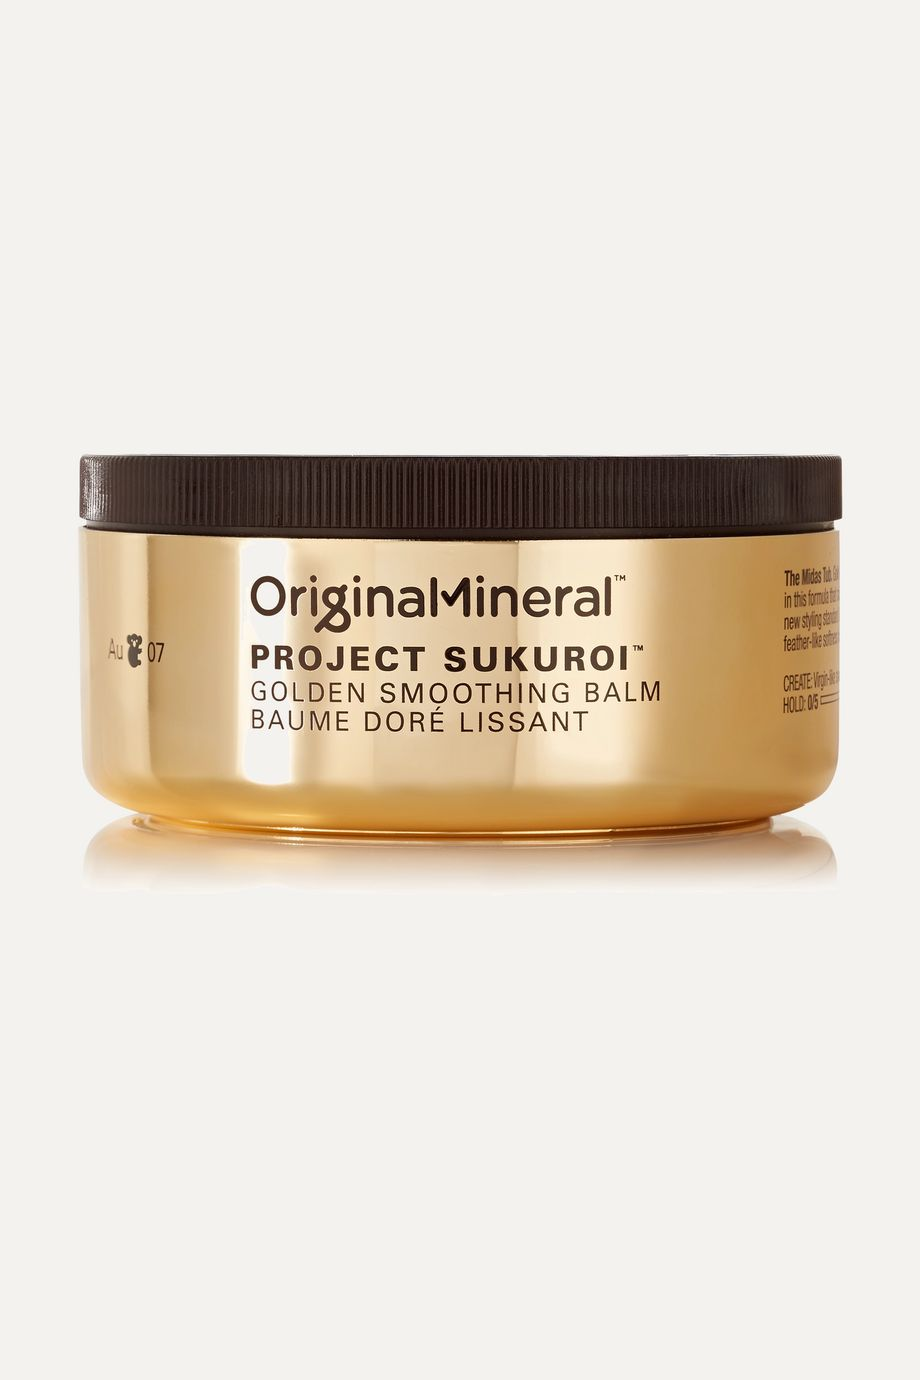 Original & Mineral Project Sukuroi Golden Smoothing Balm, 100g